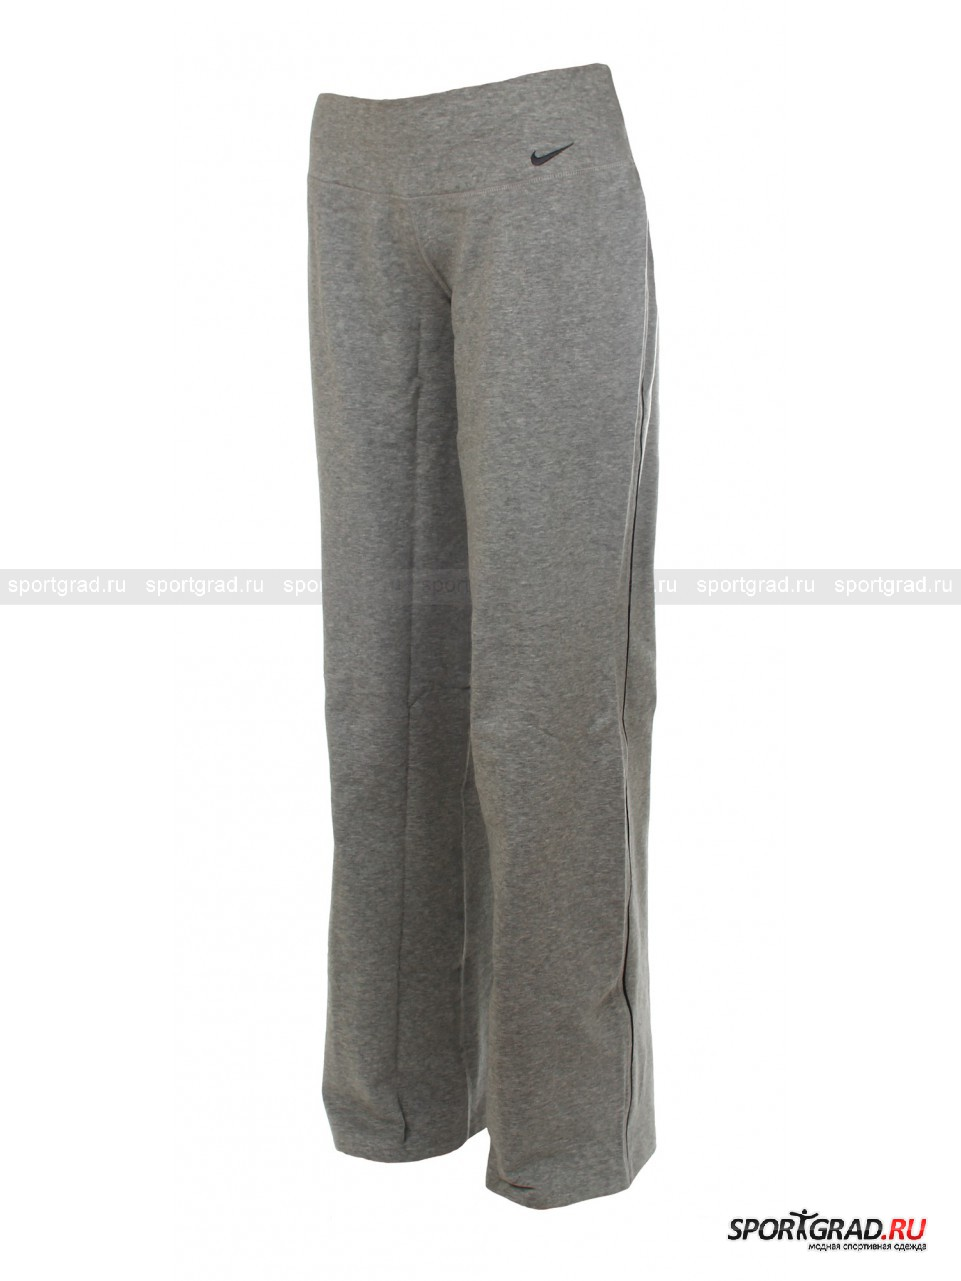 Брюки жен LOOSE COTTON PANT NIKE